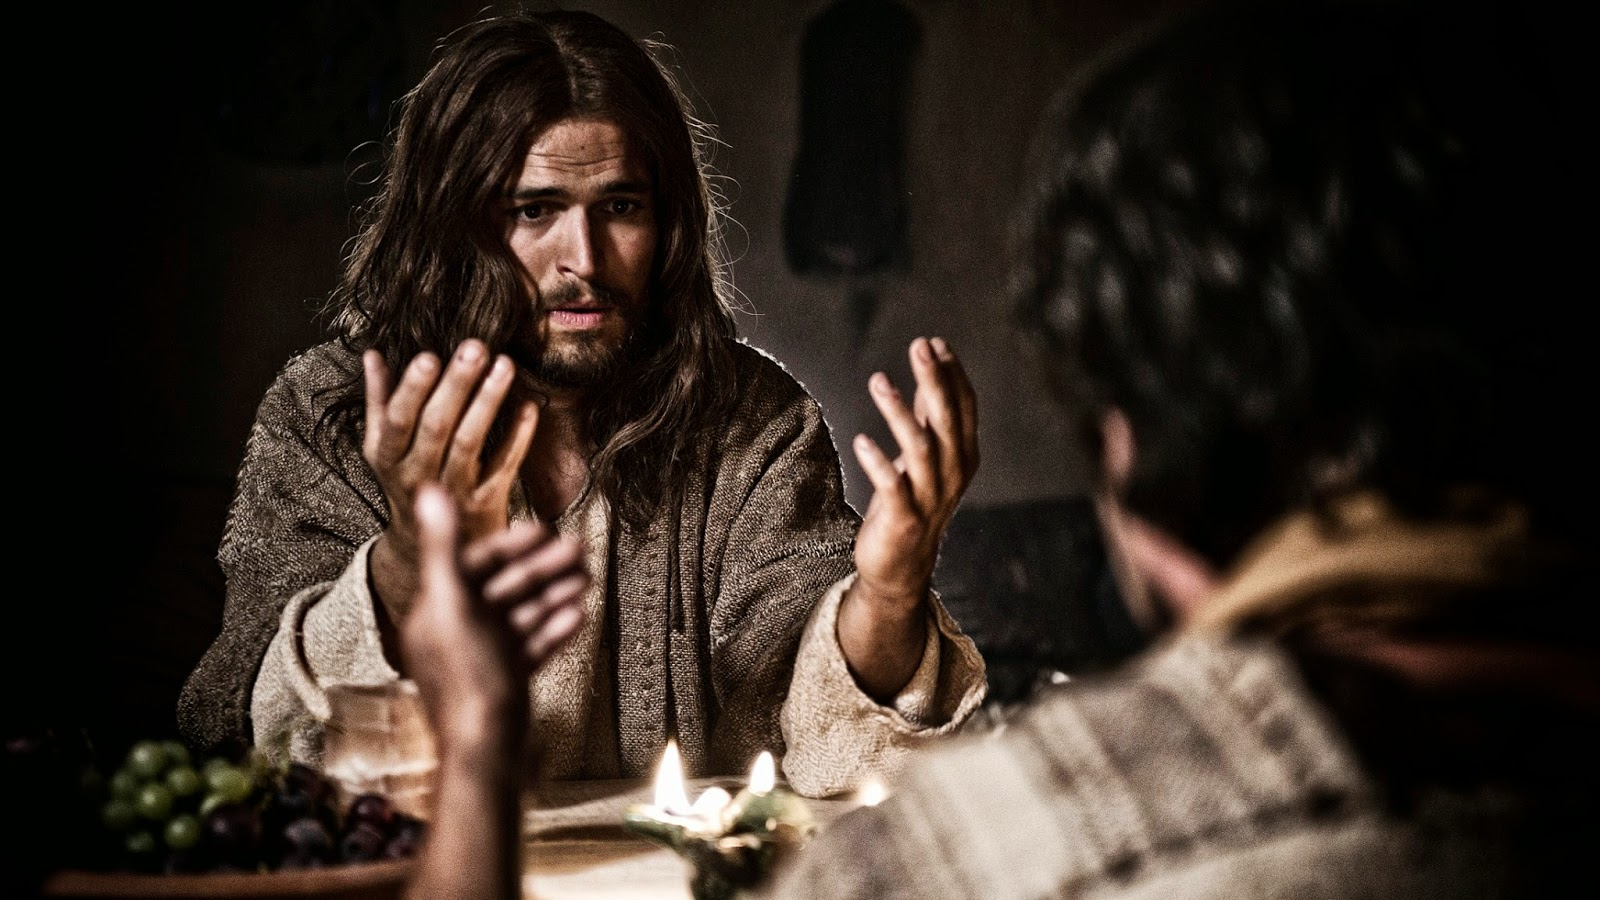 Digitista MediaWave: The coming of SON OF GOD in 2014